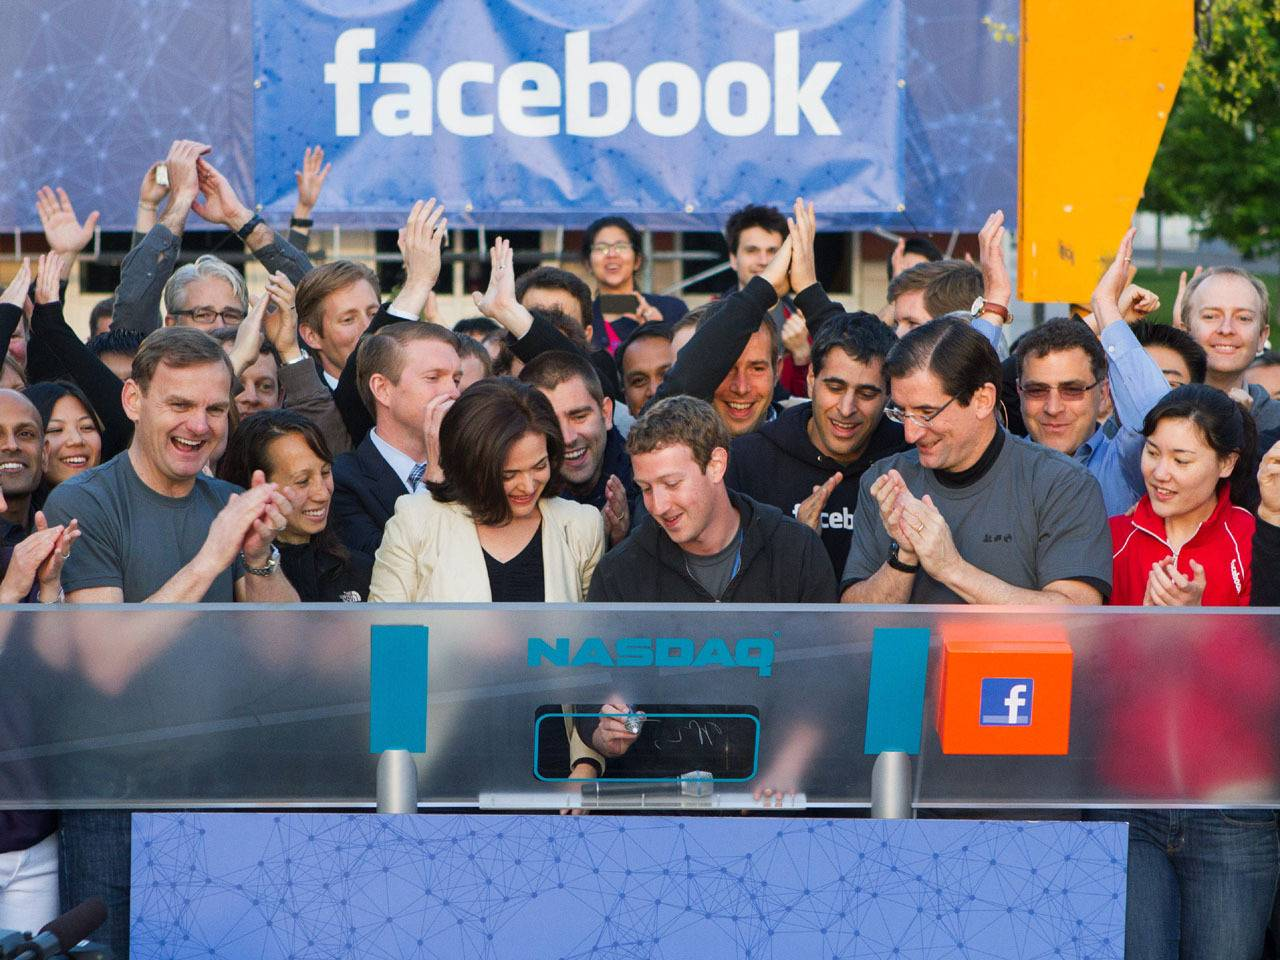 In this image provided by Facebook, Facebook founder, Chairman and CEO Mark Zuckerberg, center, rings the opening bell of the Nasdaq stock market, Friday, May 18, 2012, from Facebook headquarters in Menlo Park, Calif. The social media company priced its IPO on Thursday at $38 per share, and beginning Friday regular investors will have a chance to buy shares. (AP Photo/Nasdaq via Facebook, Zef Nikolla)